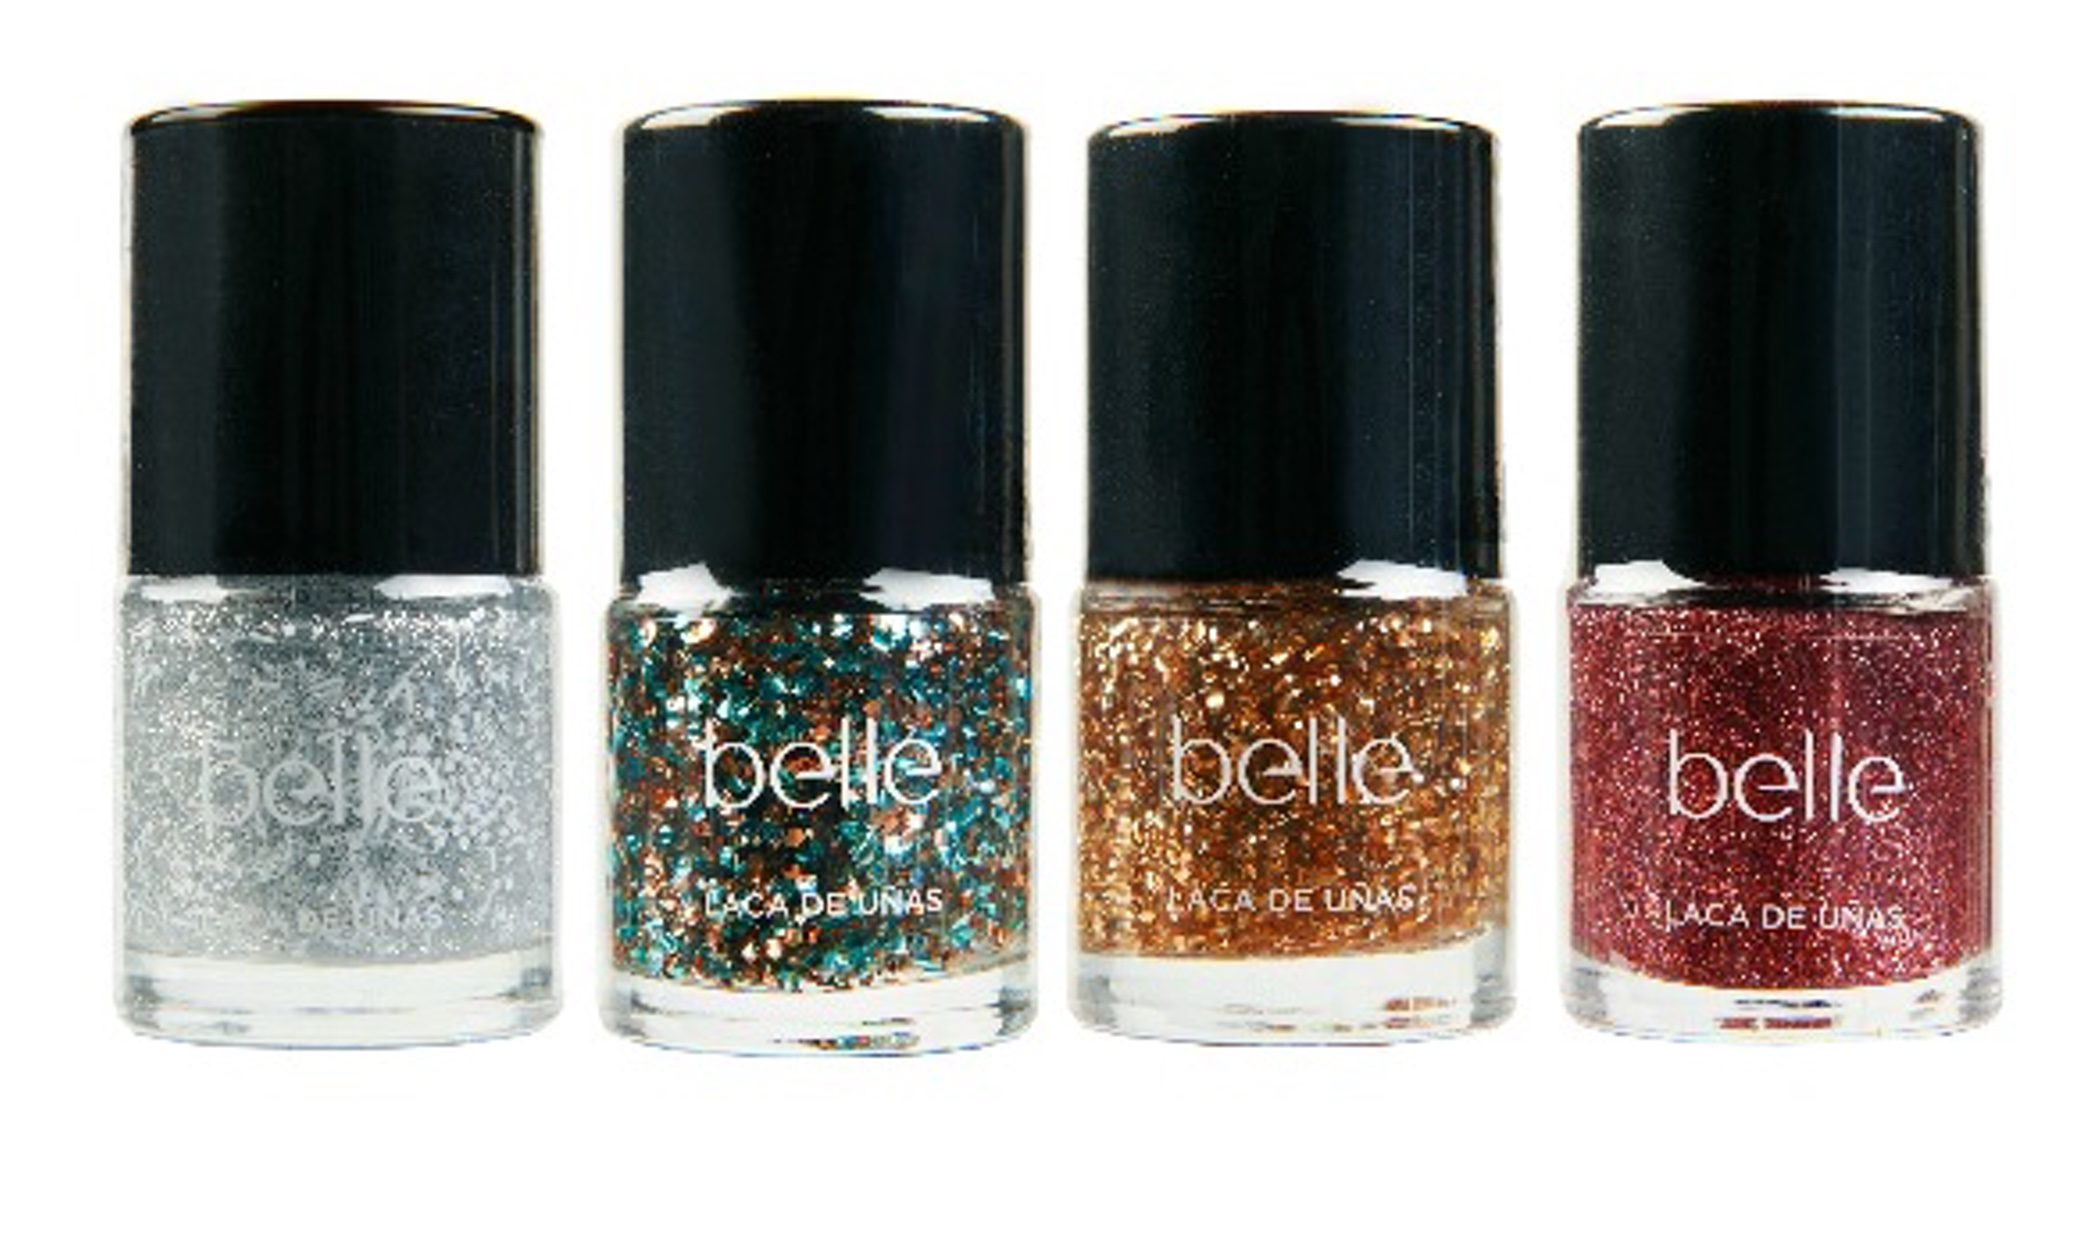 Belle & Make Up decora las uñas estas Navidades con 'All That Glitters'